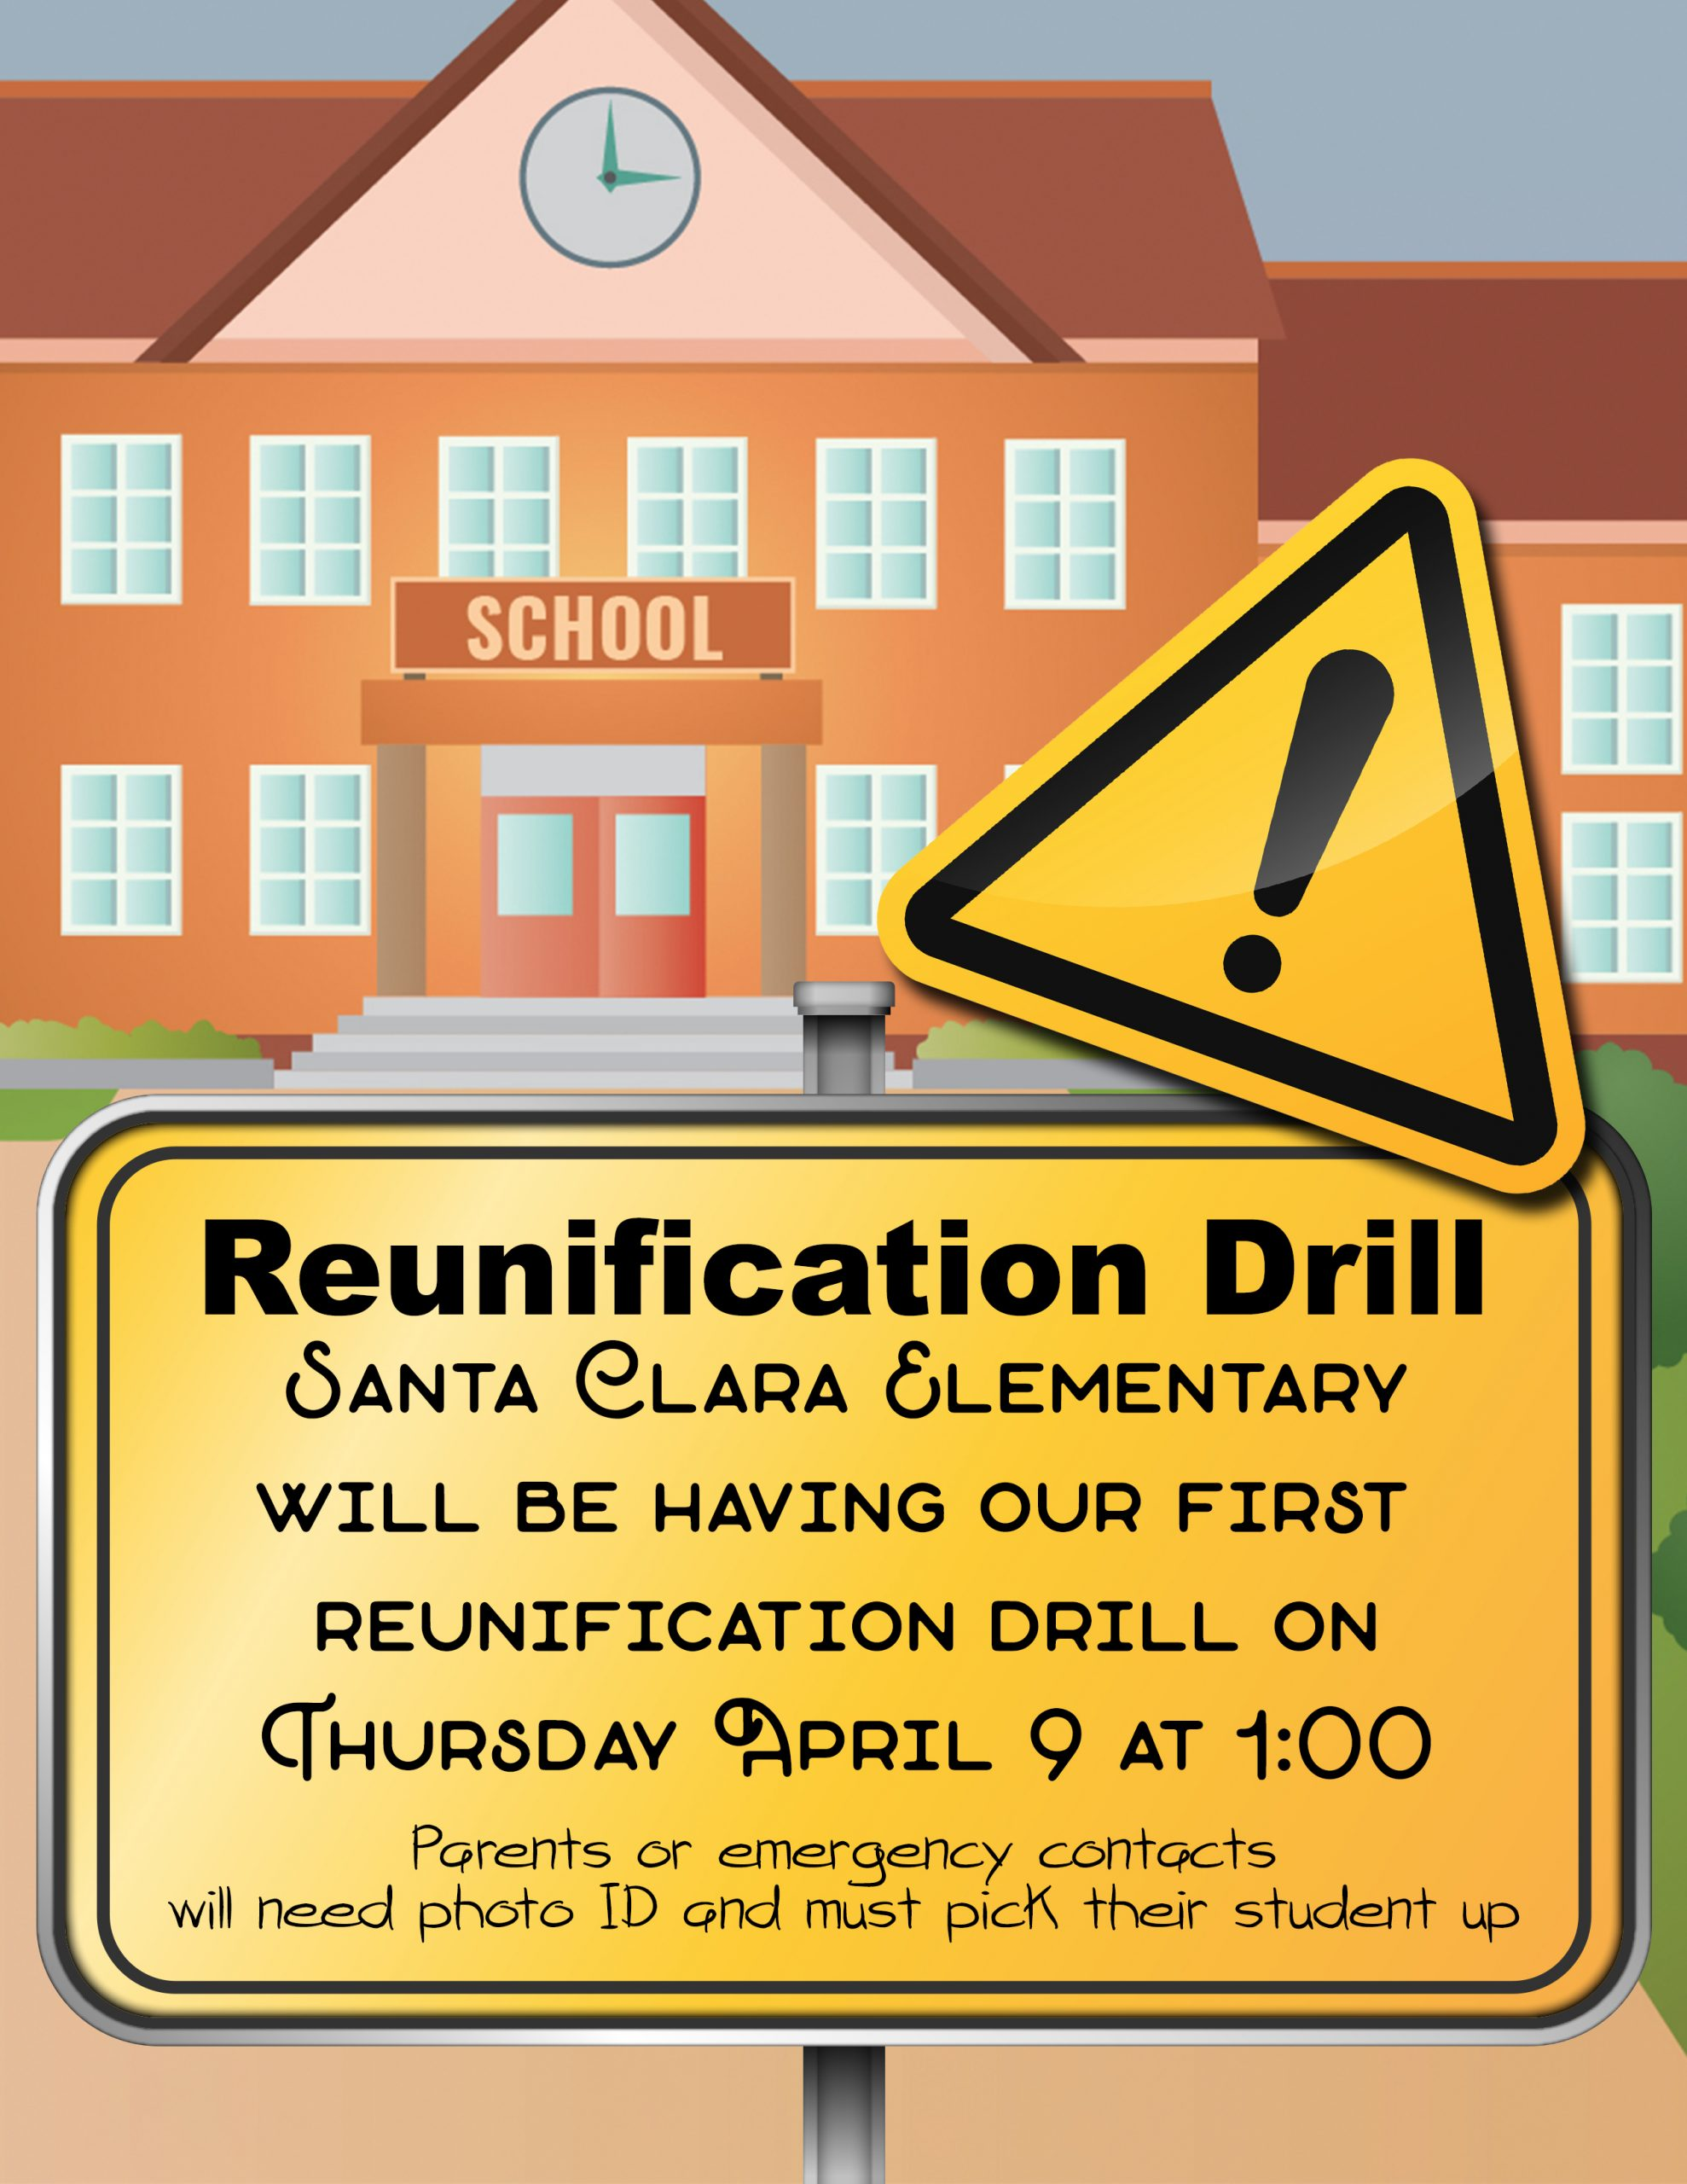 Reunification Drill: Santa Clara Elementary will be having our first reunification drill on Thursday April 9 at 1:00, Parents or emergency contacts will need photo ID and must pick their student up.